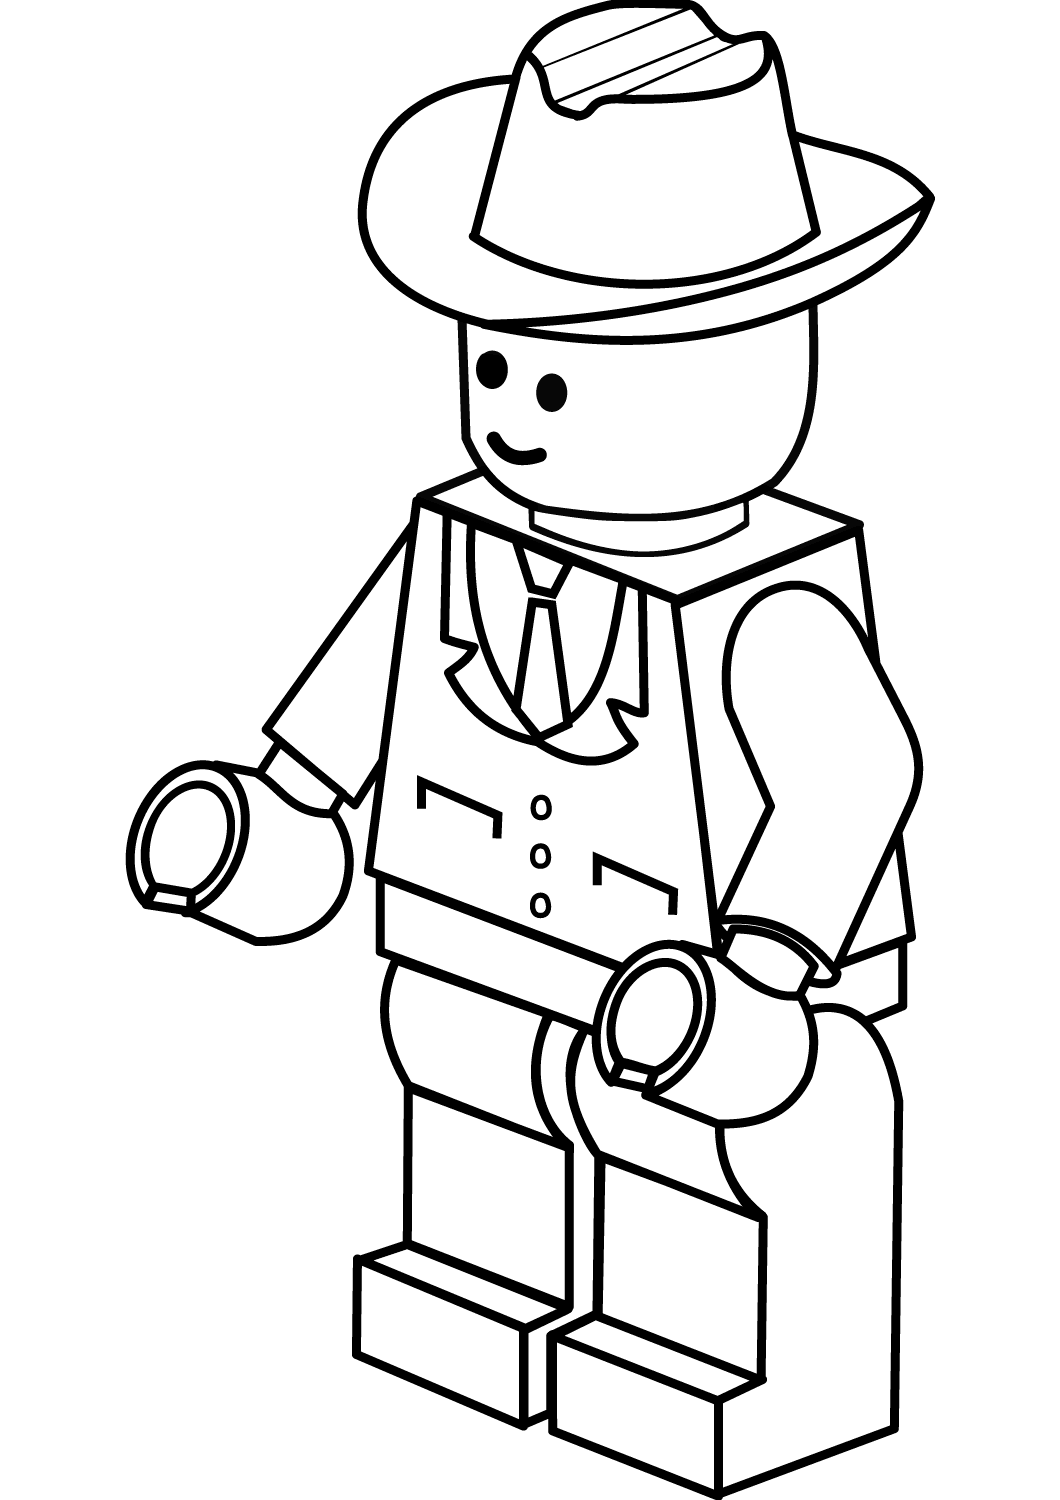 Lego Man Coloring Pages Free Lego Coloring Pages Lego Coloring Lego Coloring Sheet